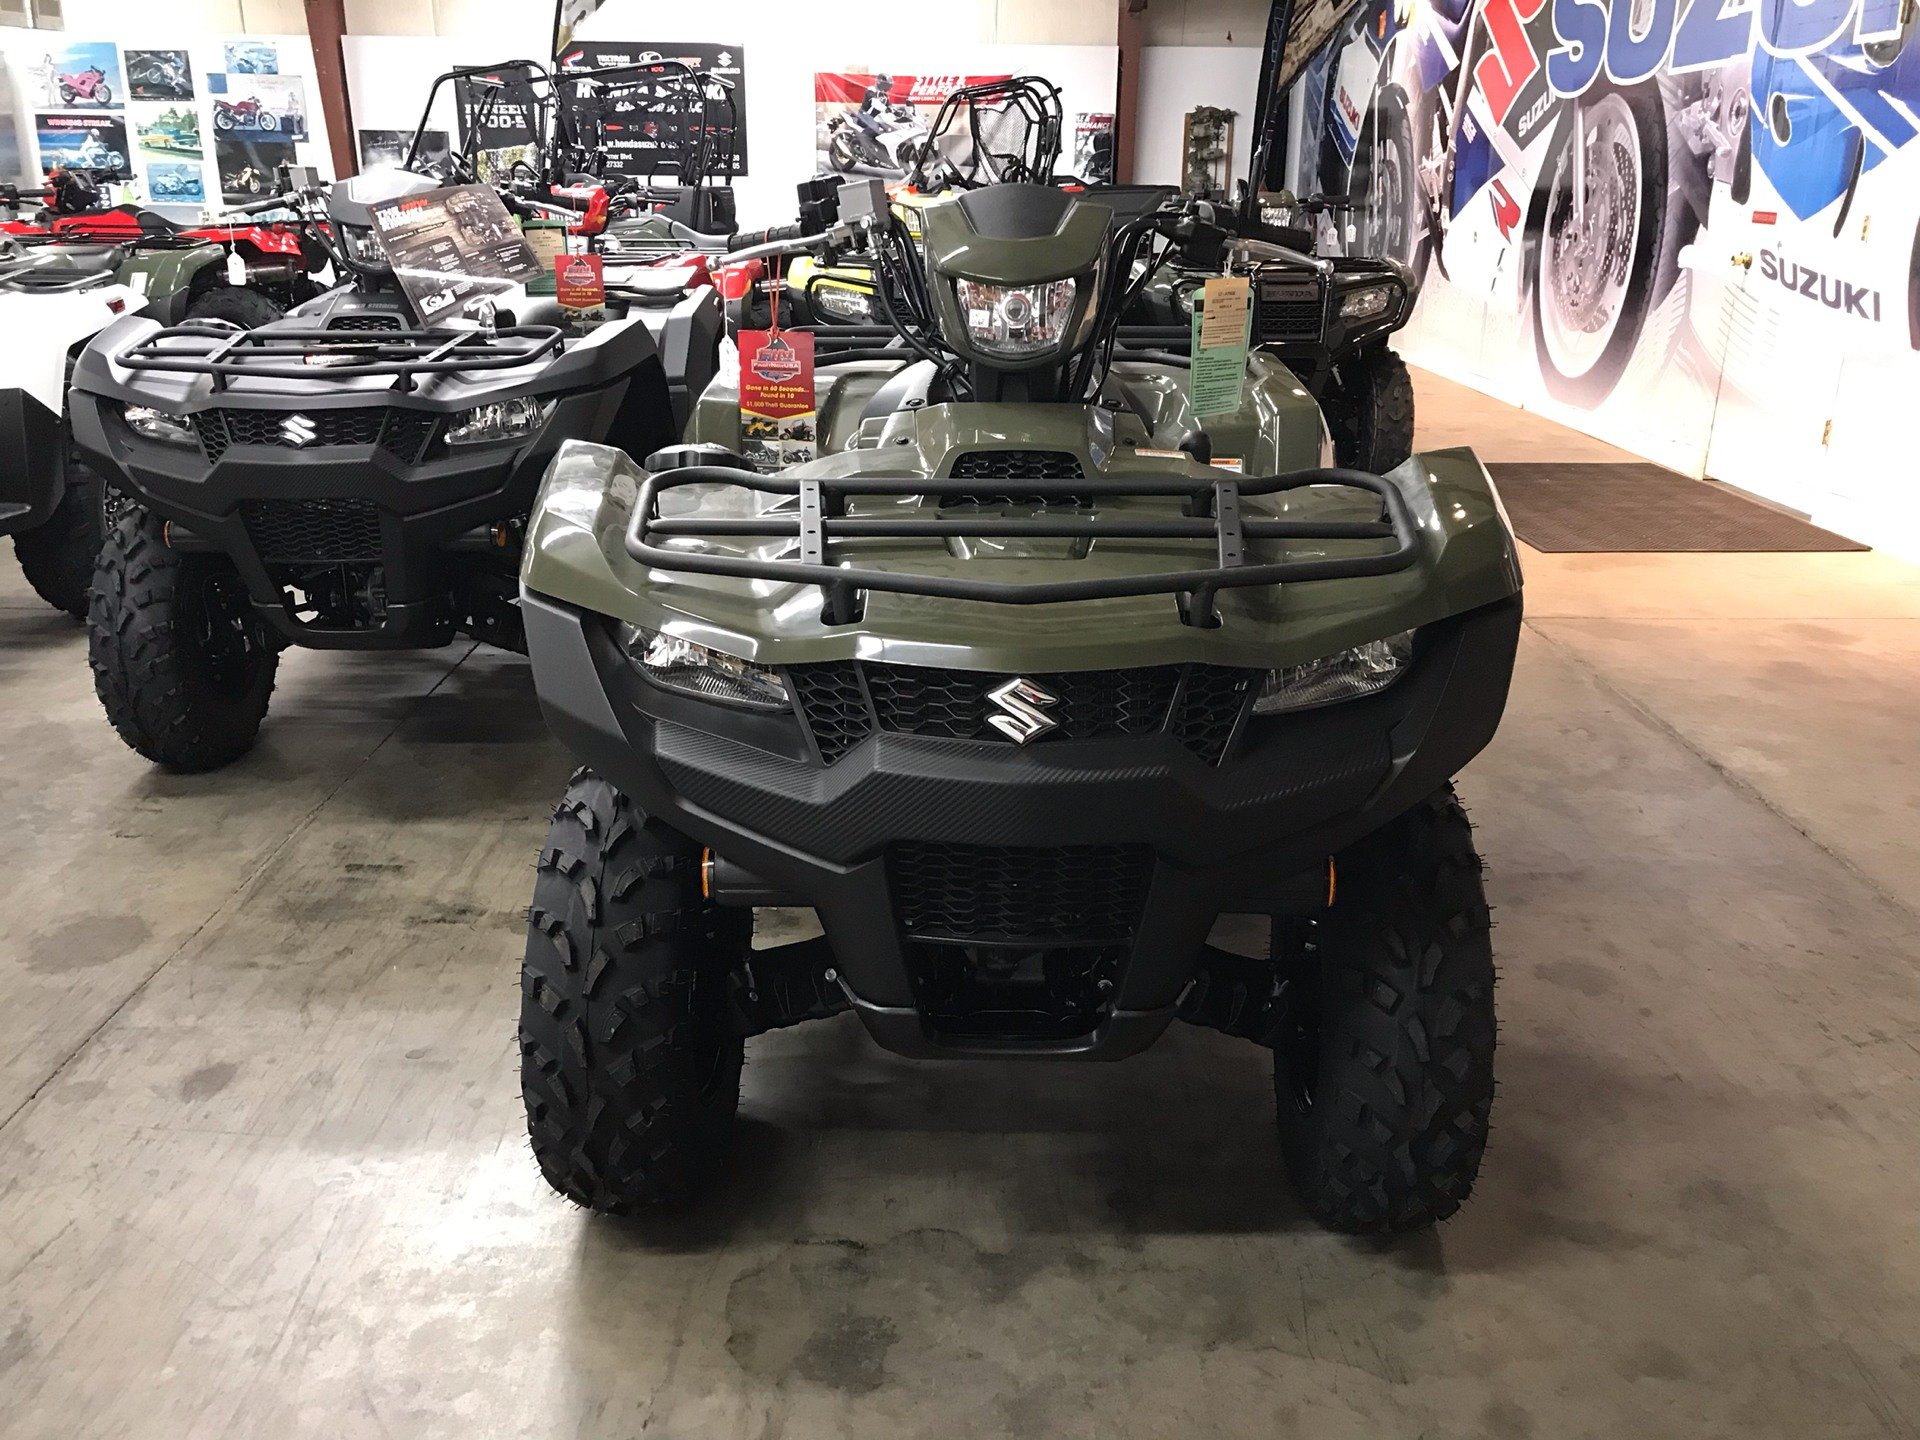 2019 Suzuki KingQuad 750AXi in Sanford, North Carolina - Photo 5